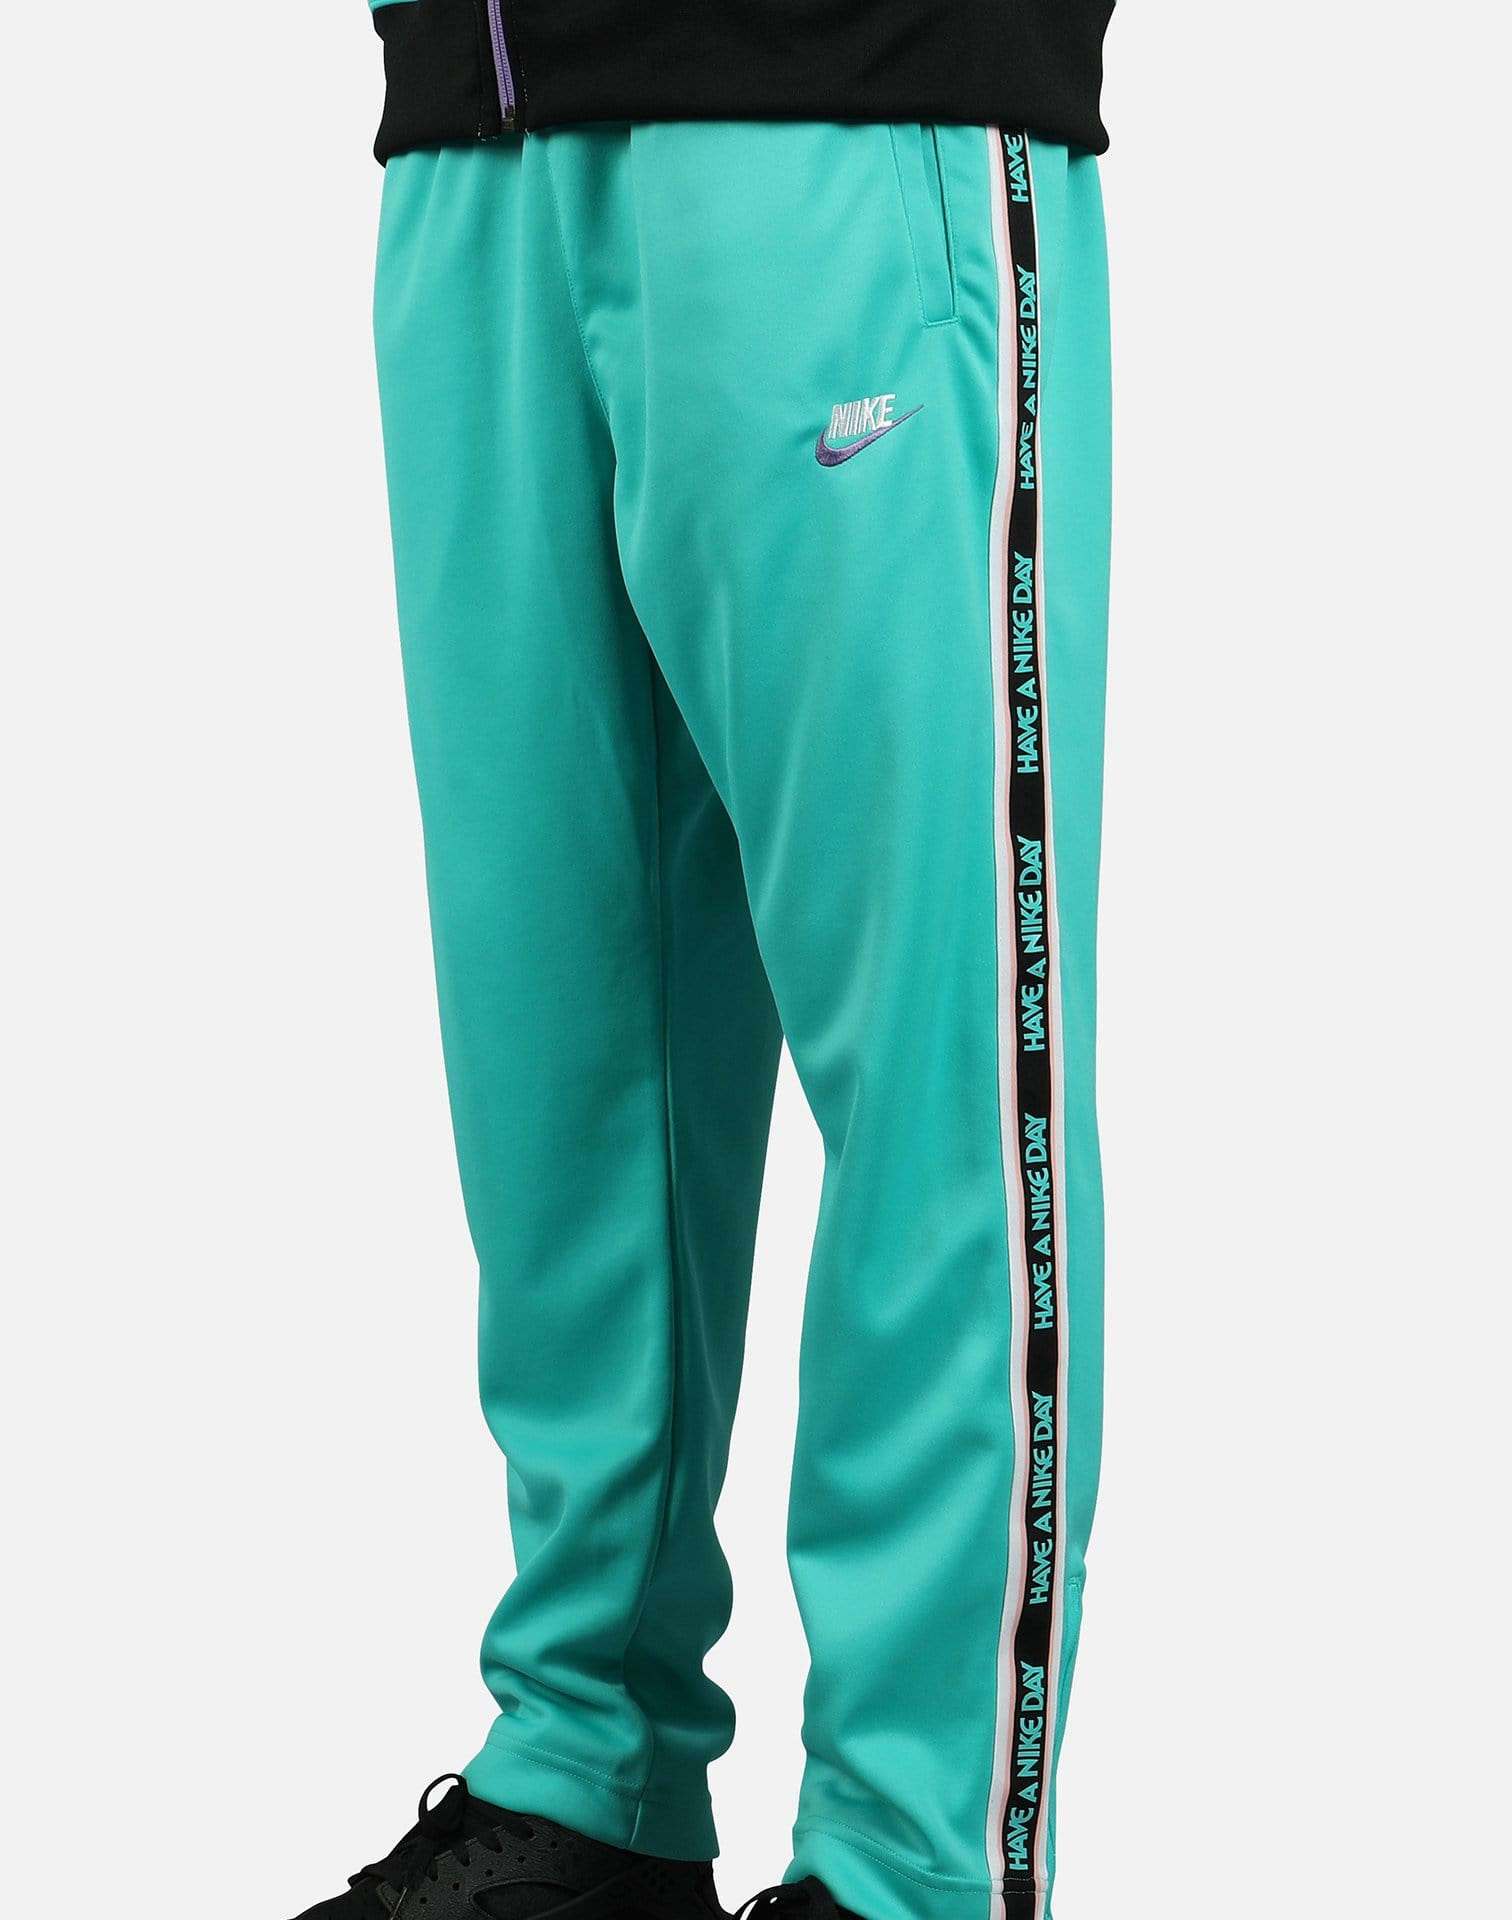 NIKE DAY' TRIBUTE TRACK PANTS – DTLR